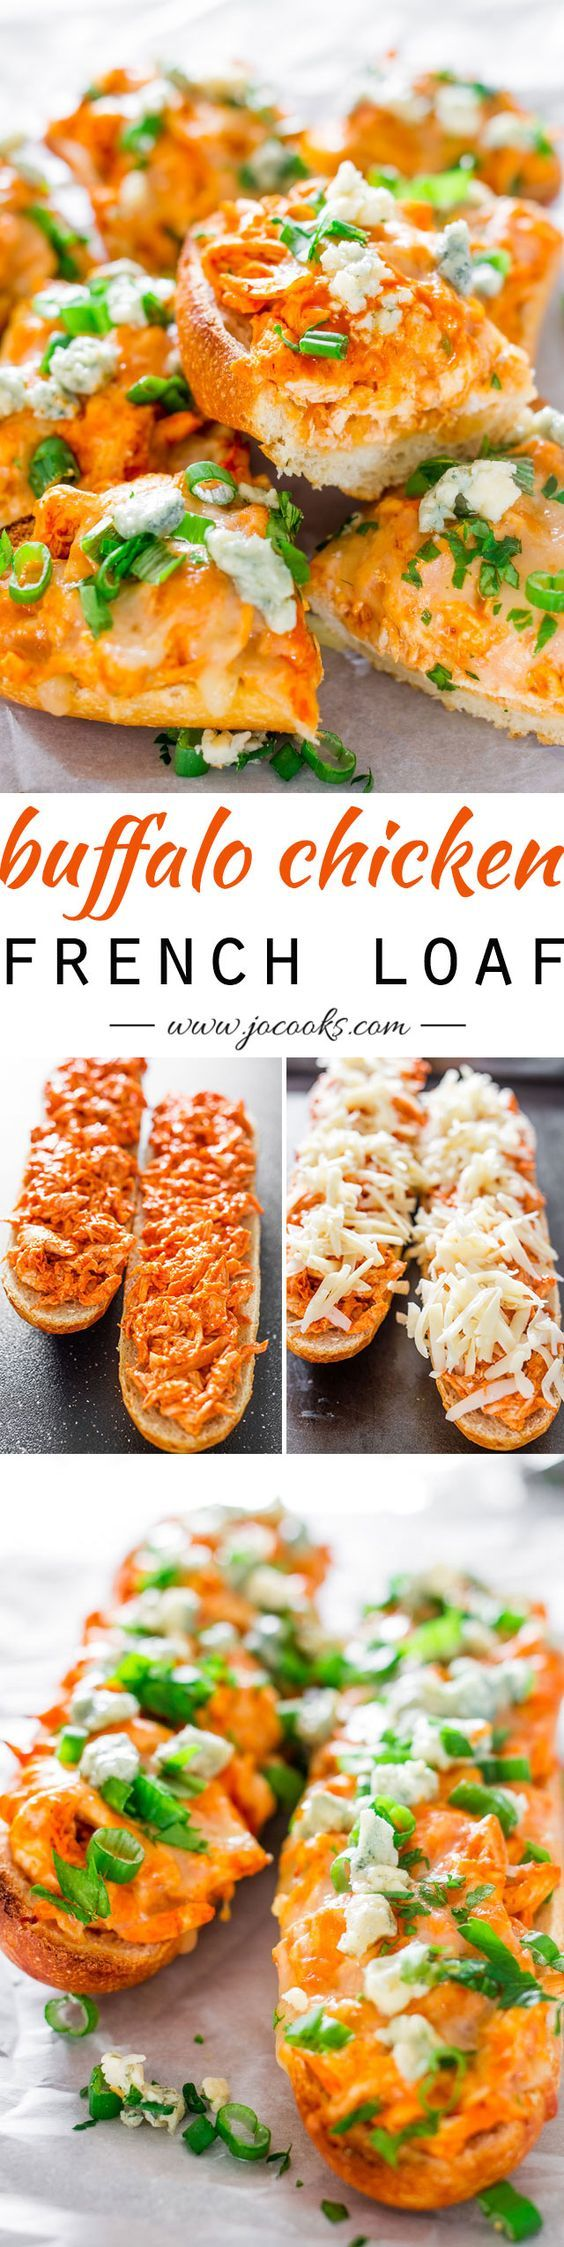 Buffalo Chicken French Loaf #appetizer #wings More